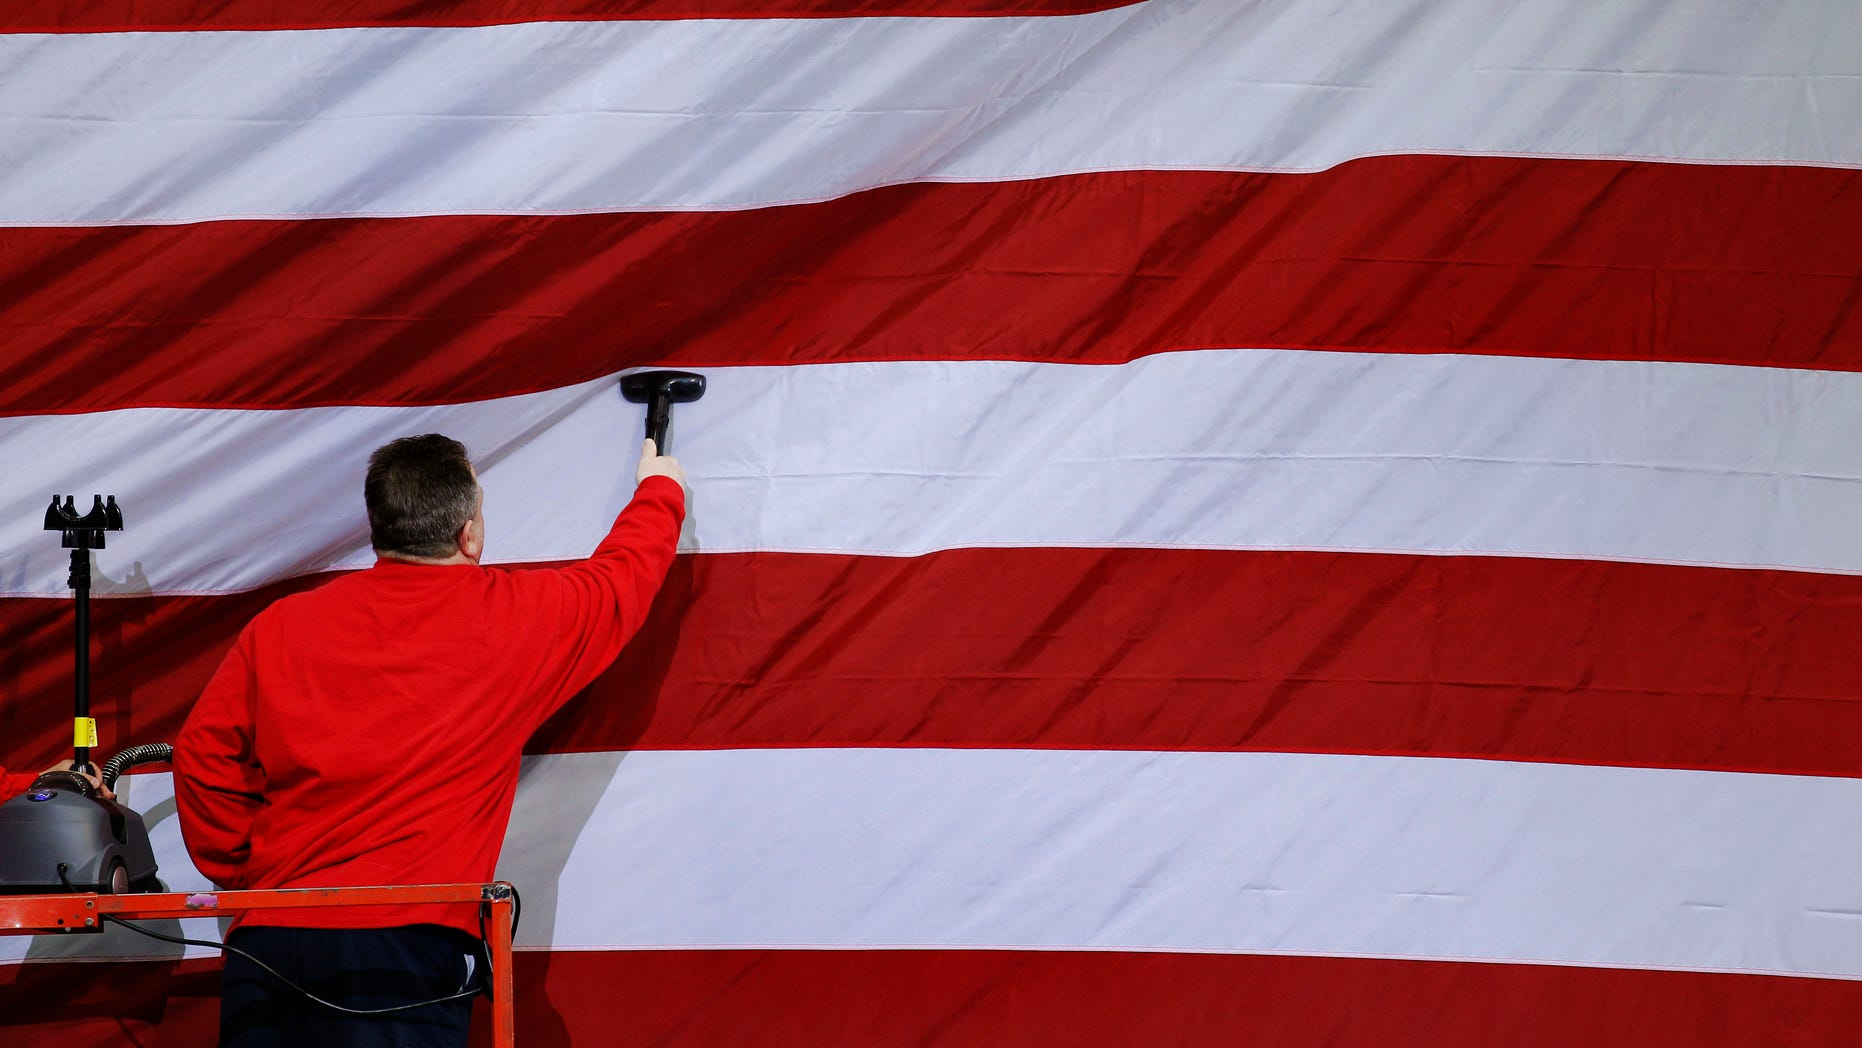 A workman steams a U.S. flag in preparation for a planned visit by President Barack Obama Wednesday, April 6, 2011, at wind turbine manufacture Gamesa Technology Corporation in Fairless Hills, Pa. (AP)